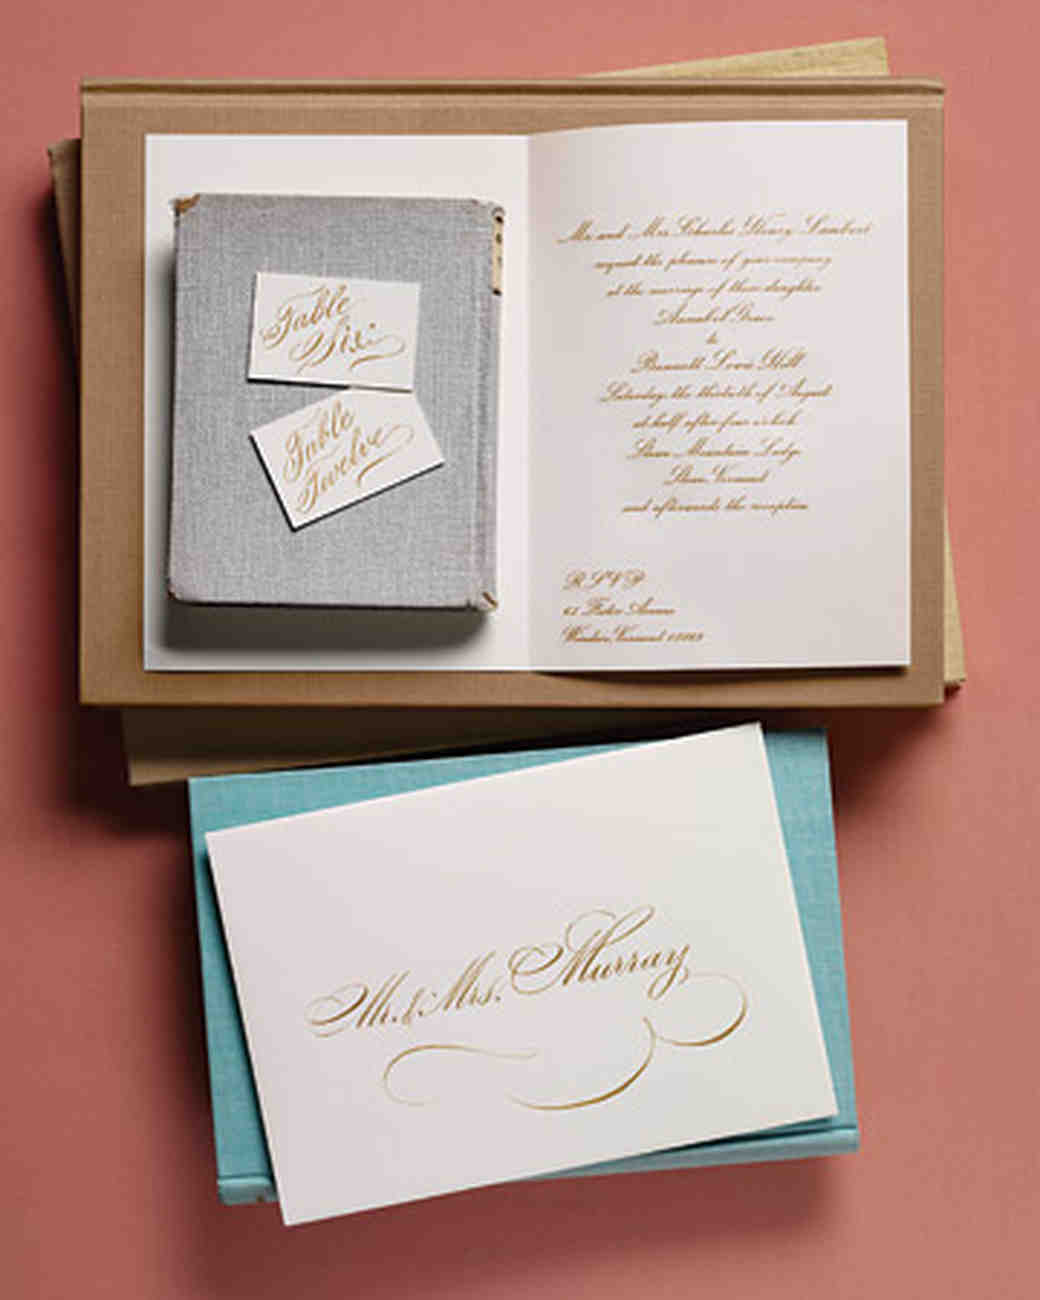 10 things you should know before mailing your wedding invitations, Wedding invitations